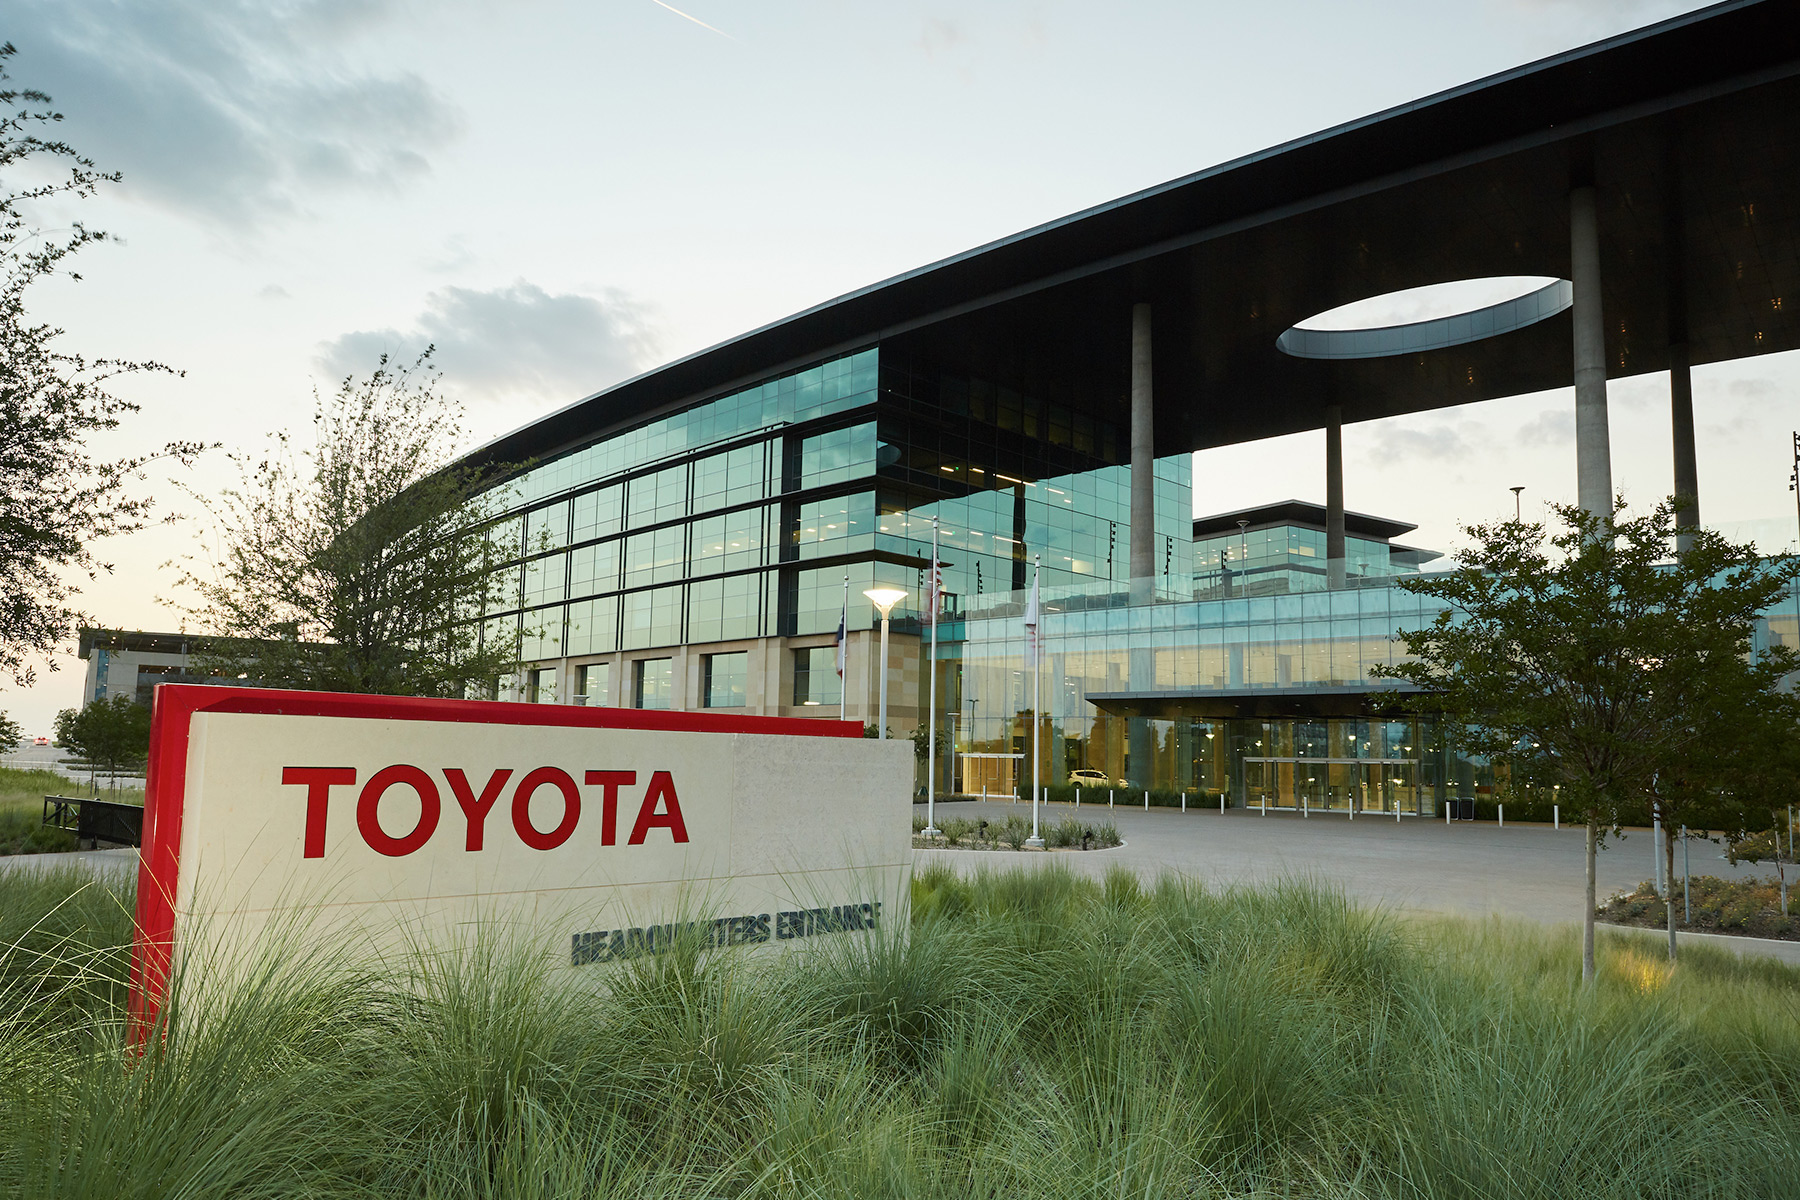 Toyota Of Plano >> Toyota's Jim Lentz Is D CEO's 2018 CEO of the Year - D ...